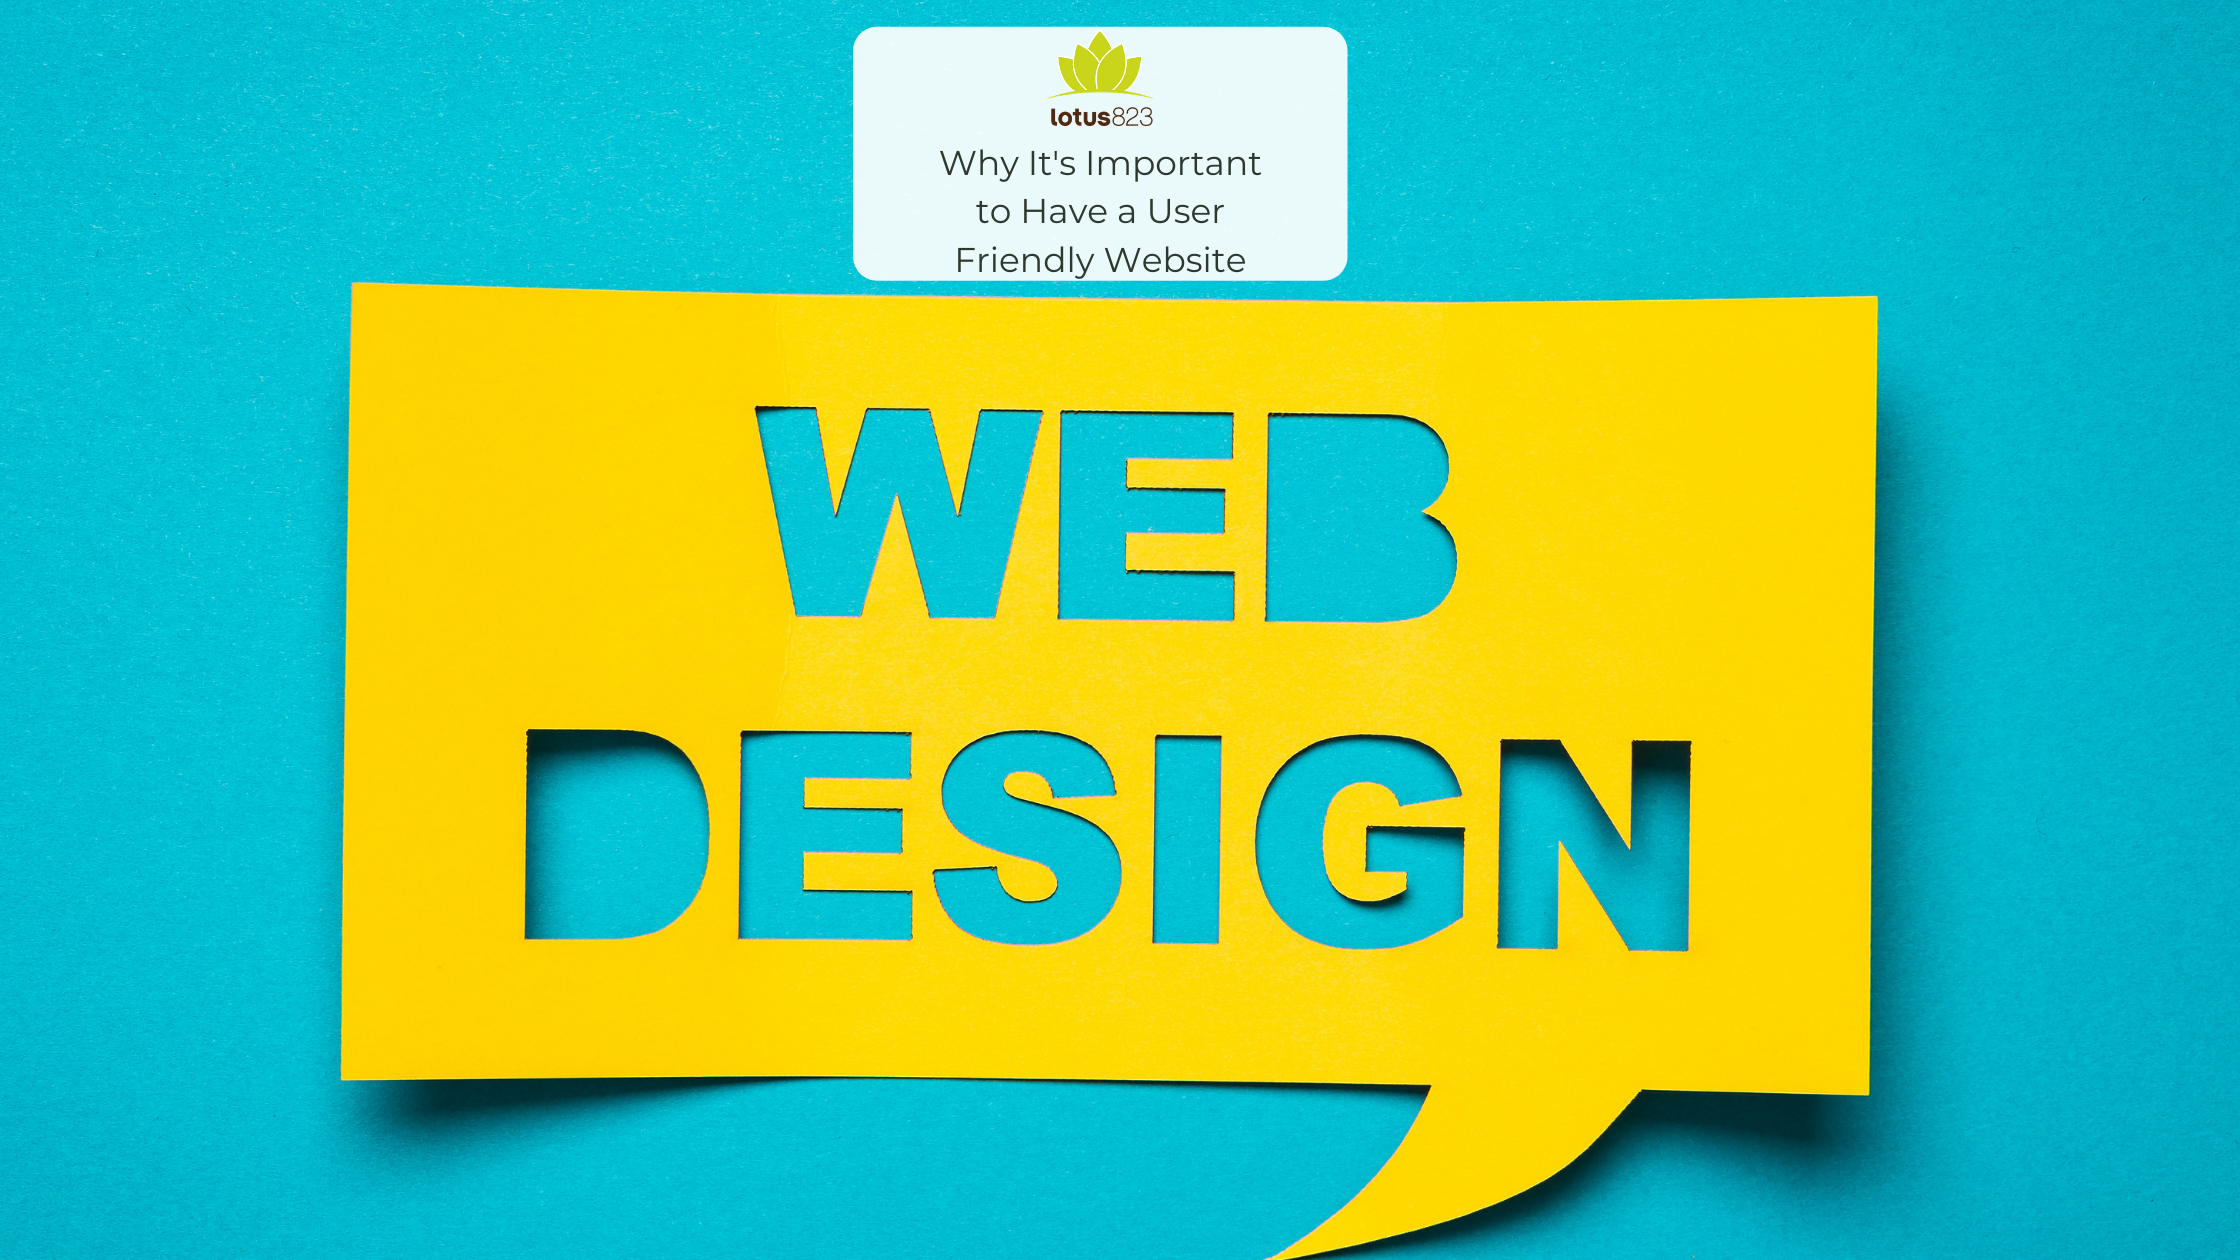 Why It's Important to Have a User - Friendly Website